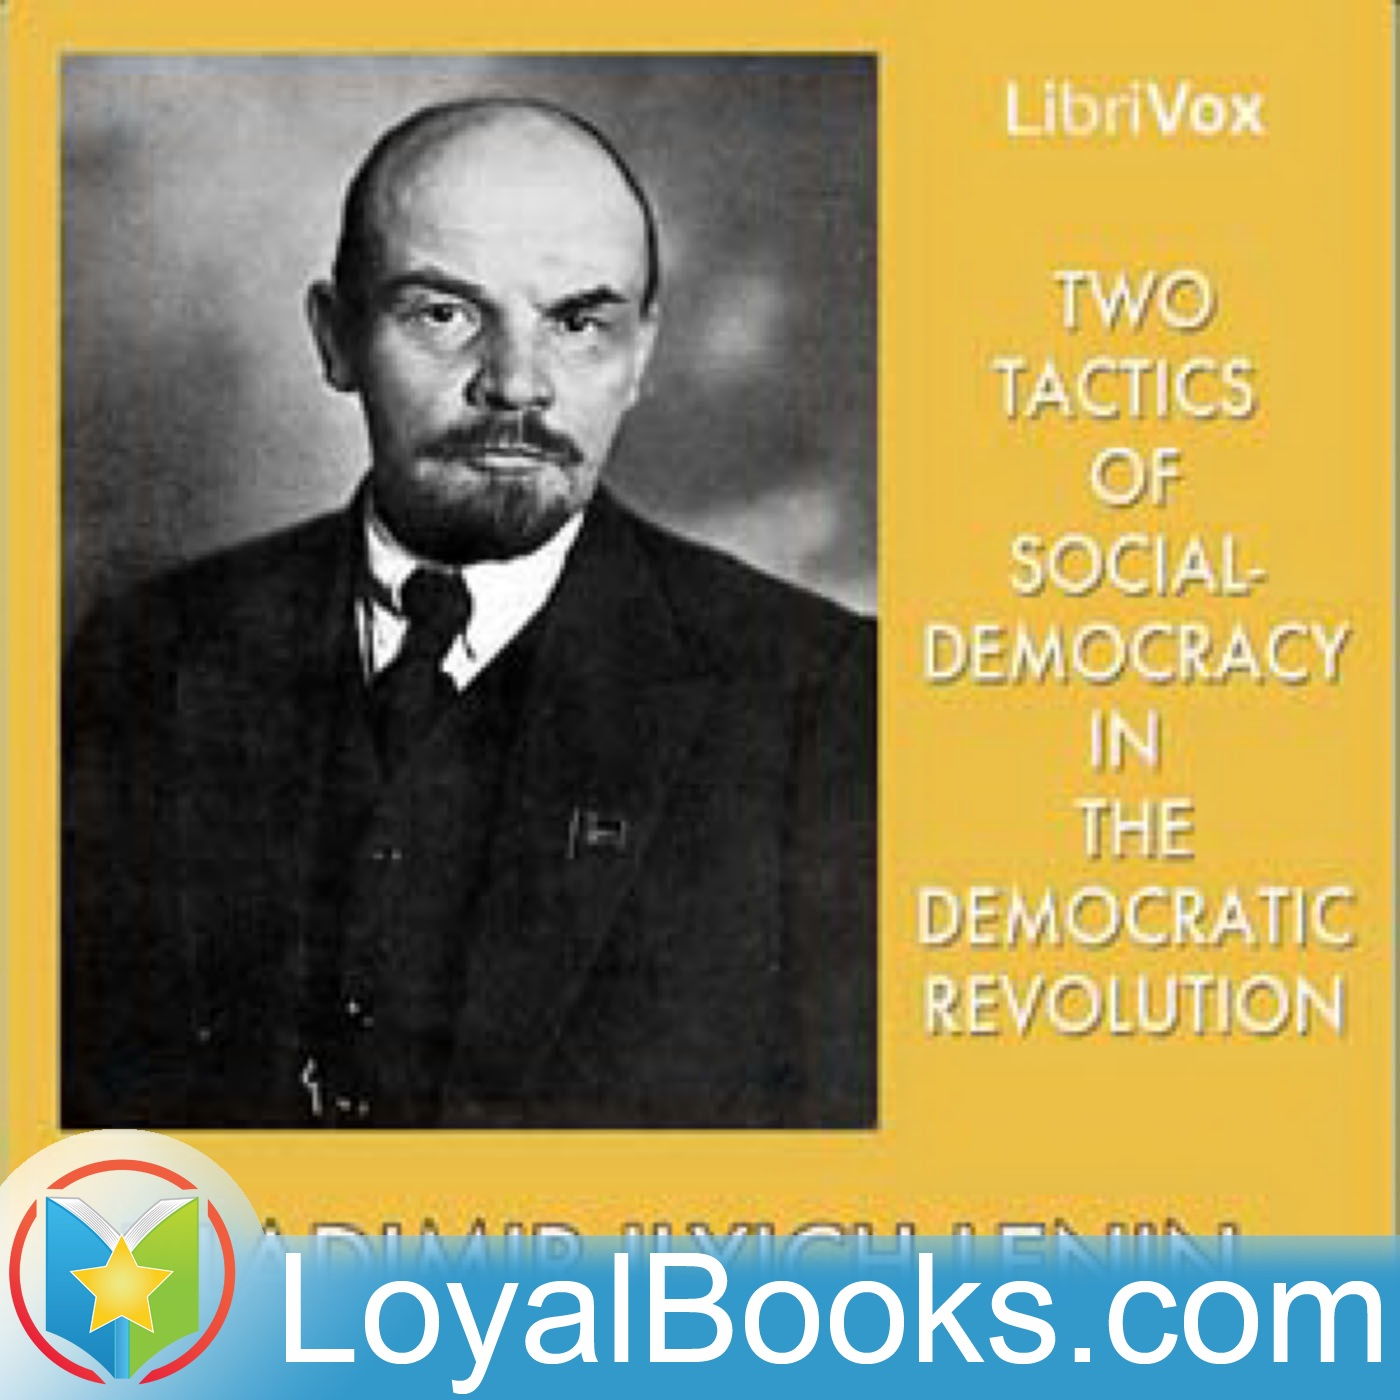 <![CDATA[Two Tactics of Social-Democracy in the Democratic Revolution by Vladimir Ilyich Lenin]]>